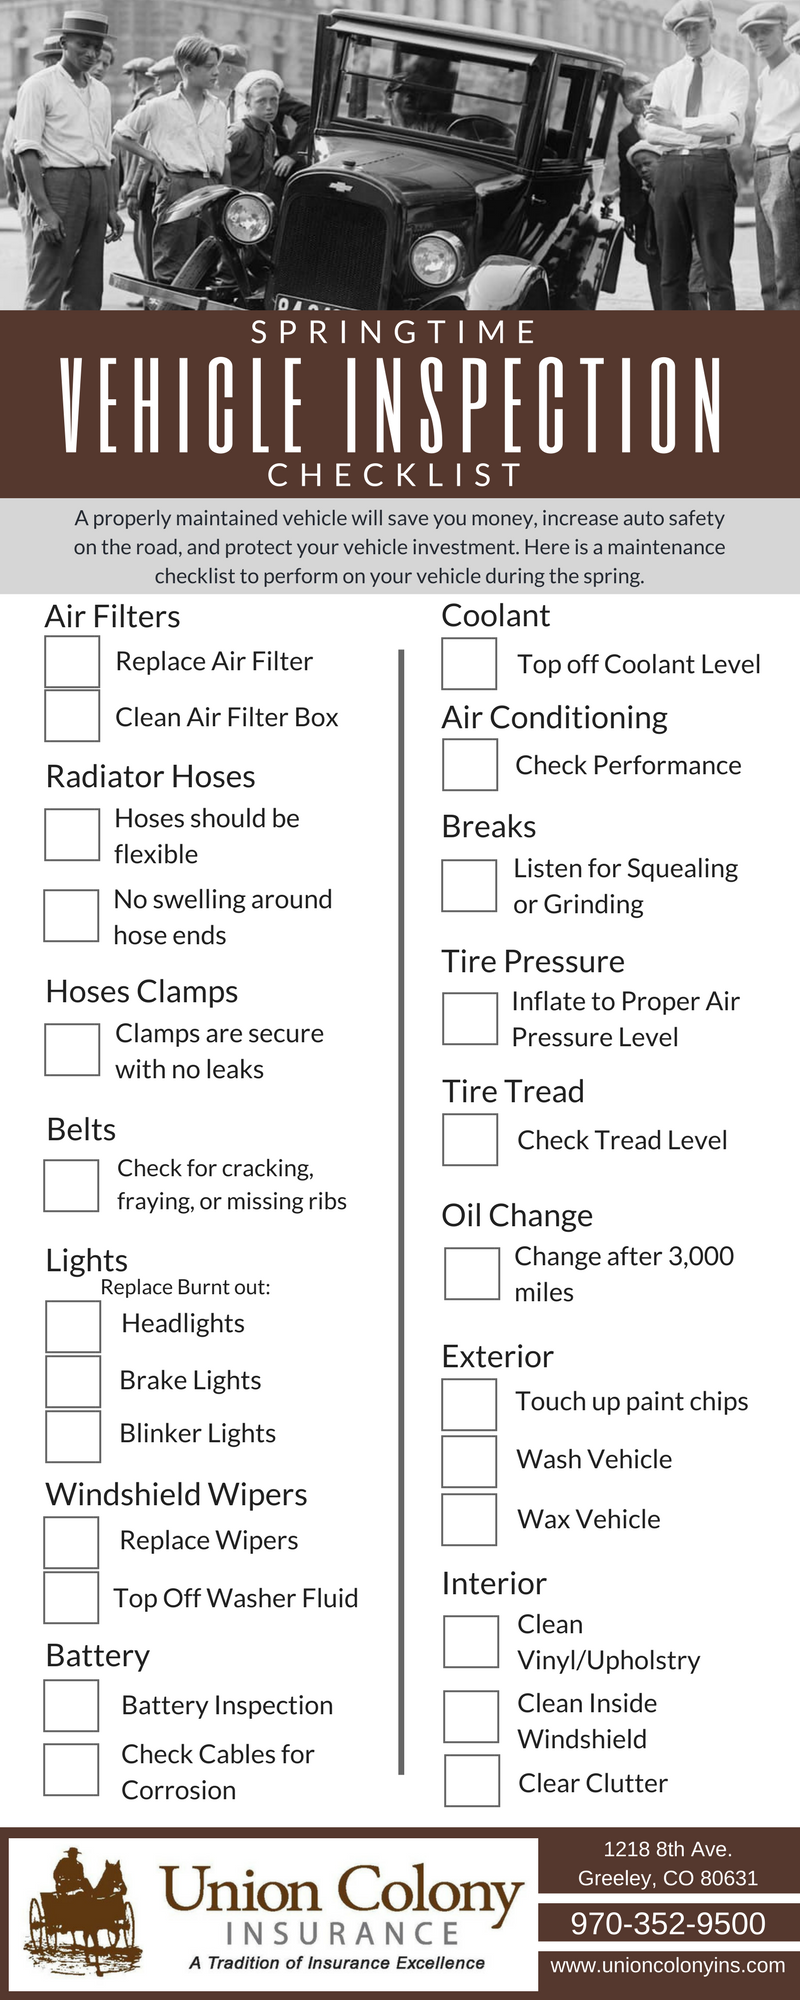 Vehicle Inspection Checklist >> Springtime Vehicle Inspection Checklist